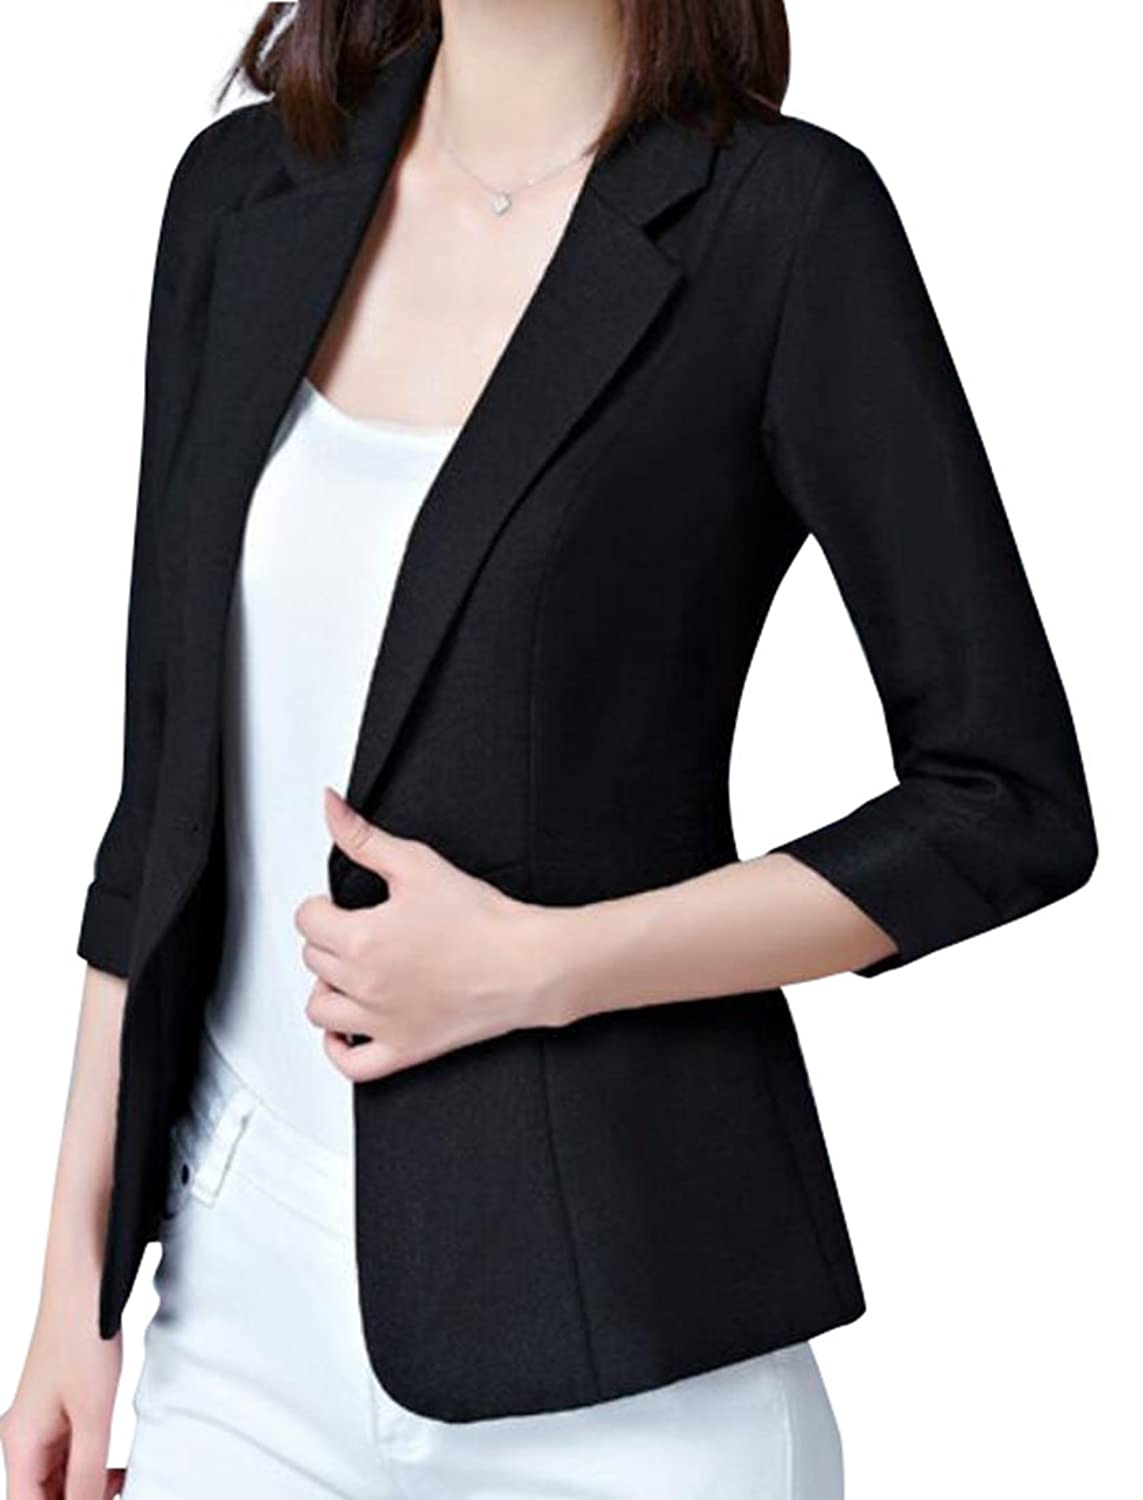 Hot Fensajomon-Women 3/4 Sleeve One Button Slim Fit Work Blazer Jacket Suit Coat for cheap